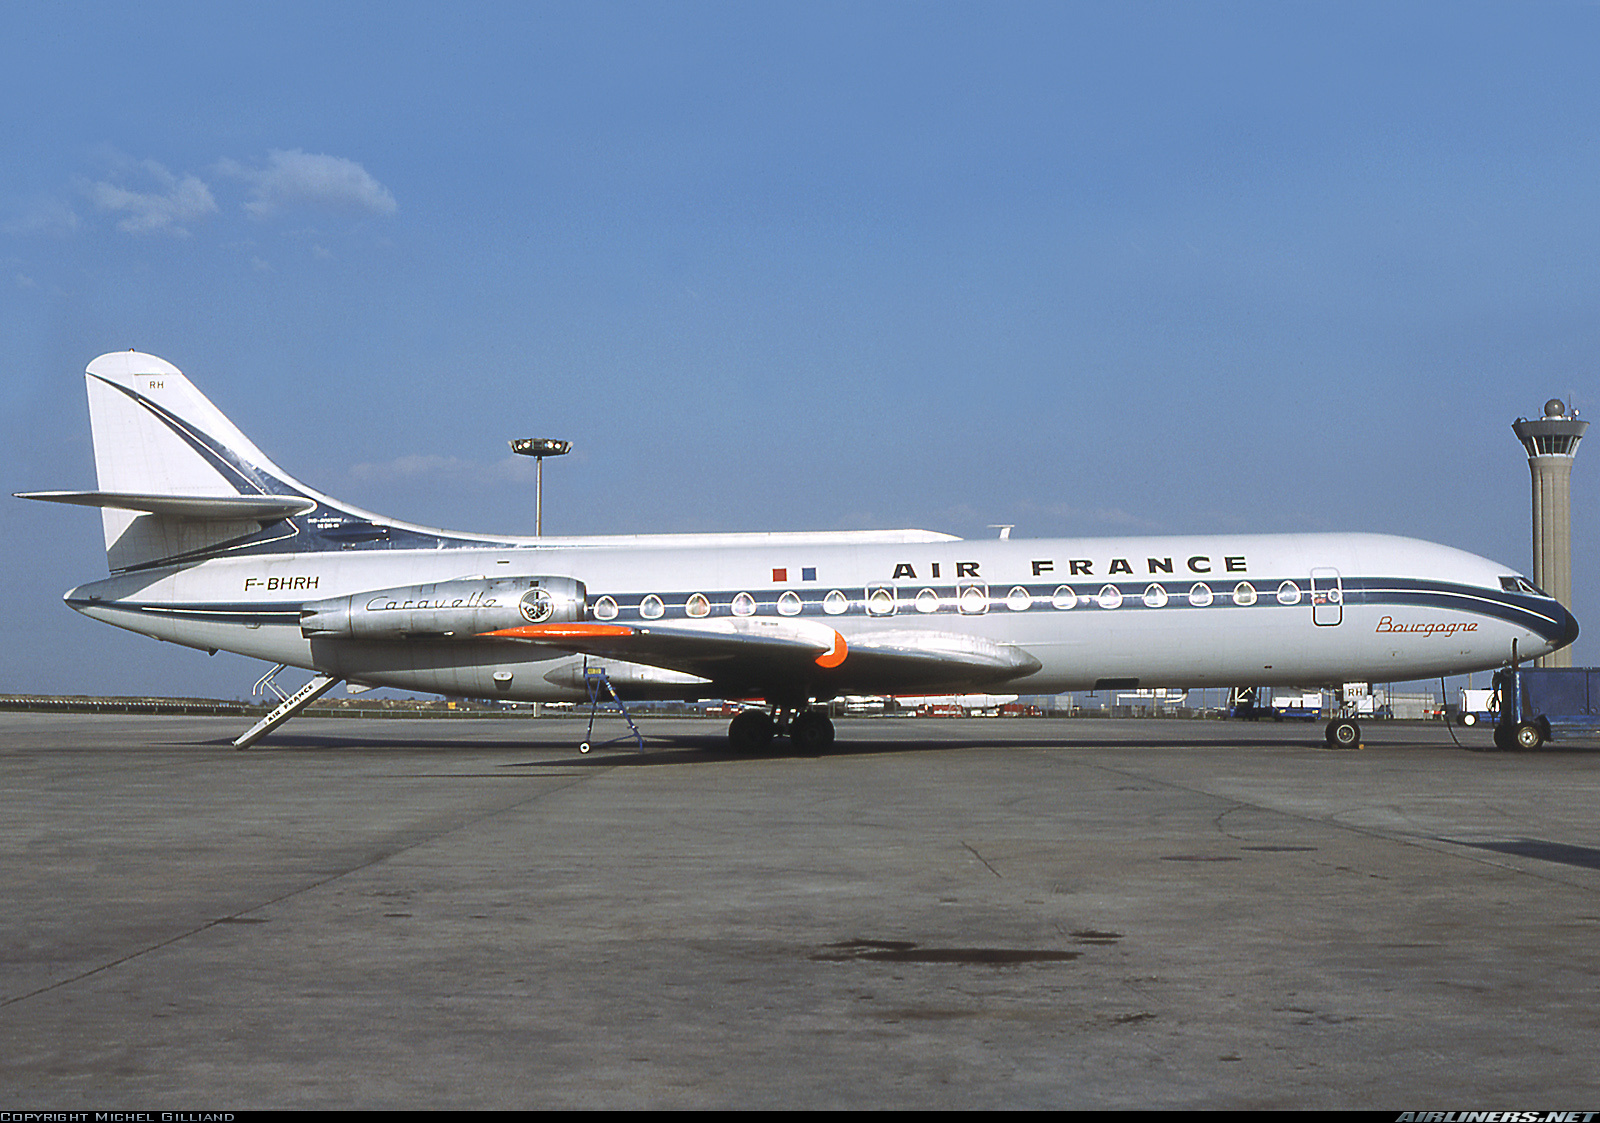 The French Sud Aviation SE 210 Caravelle